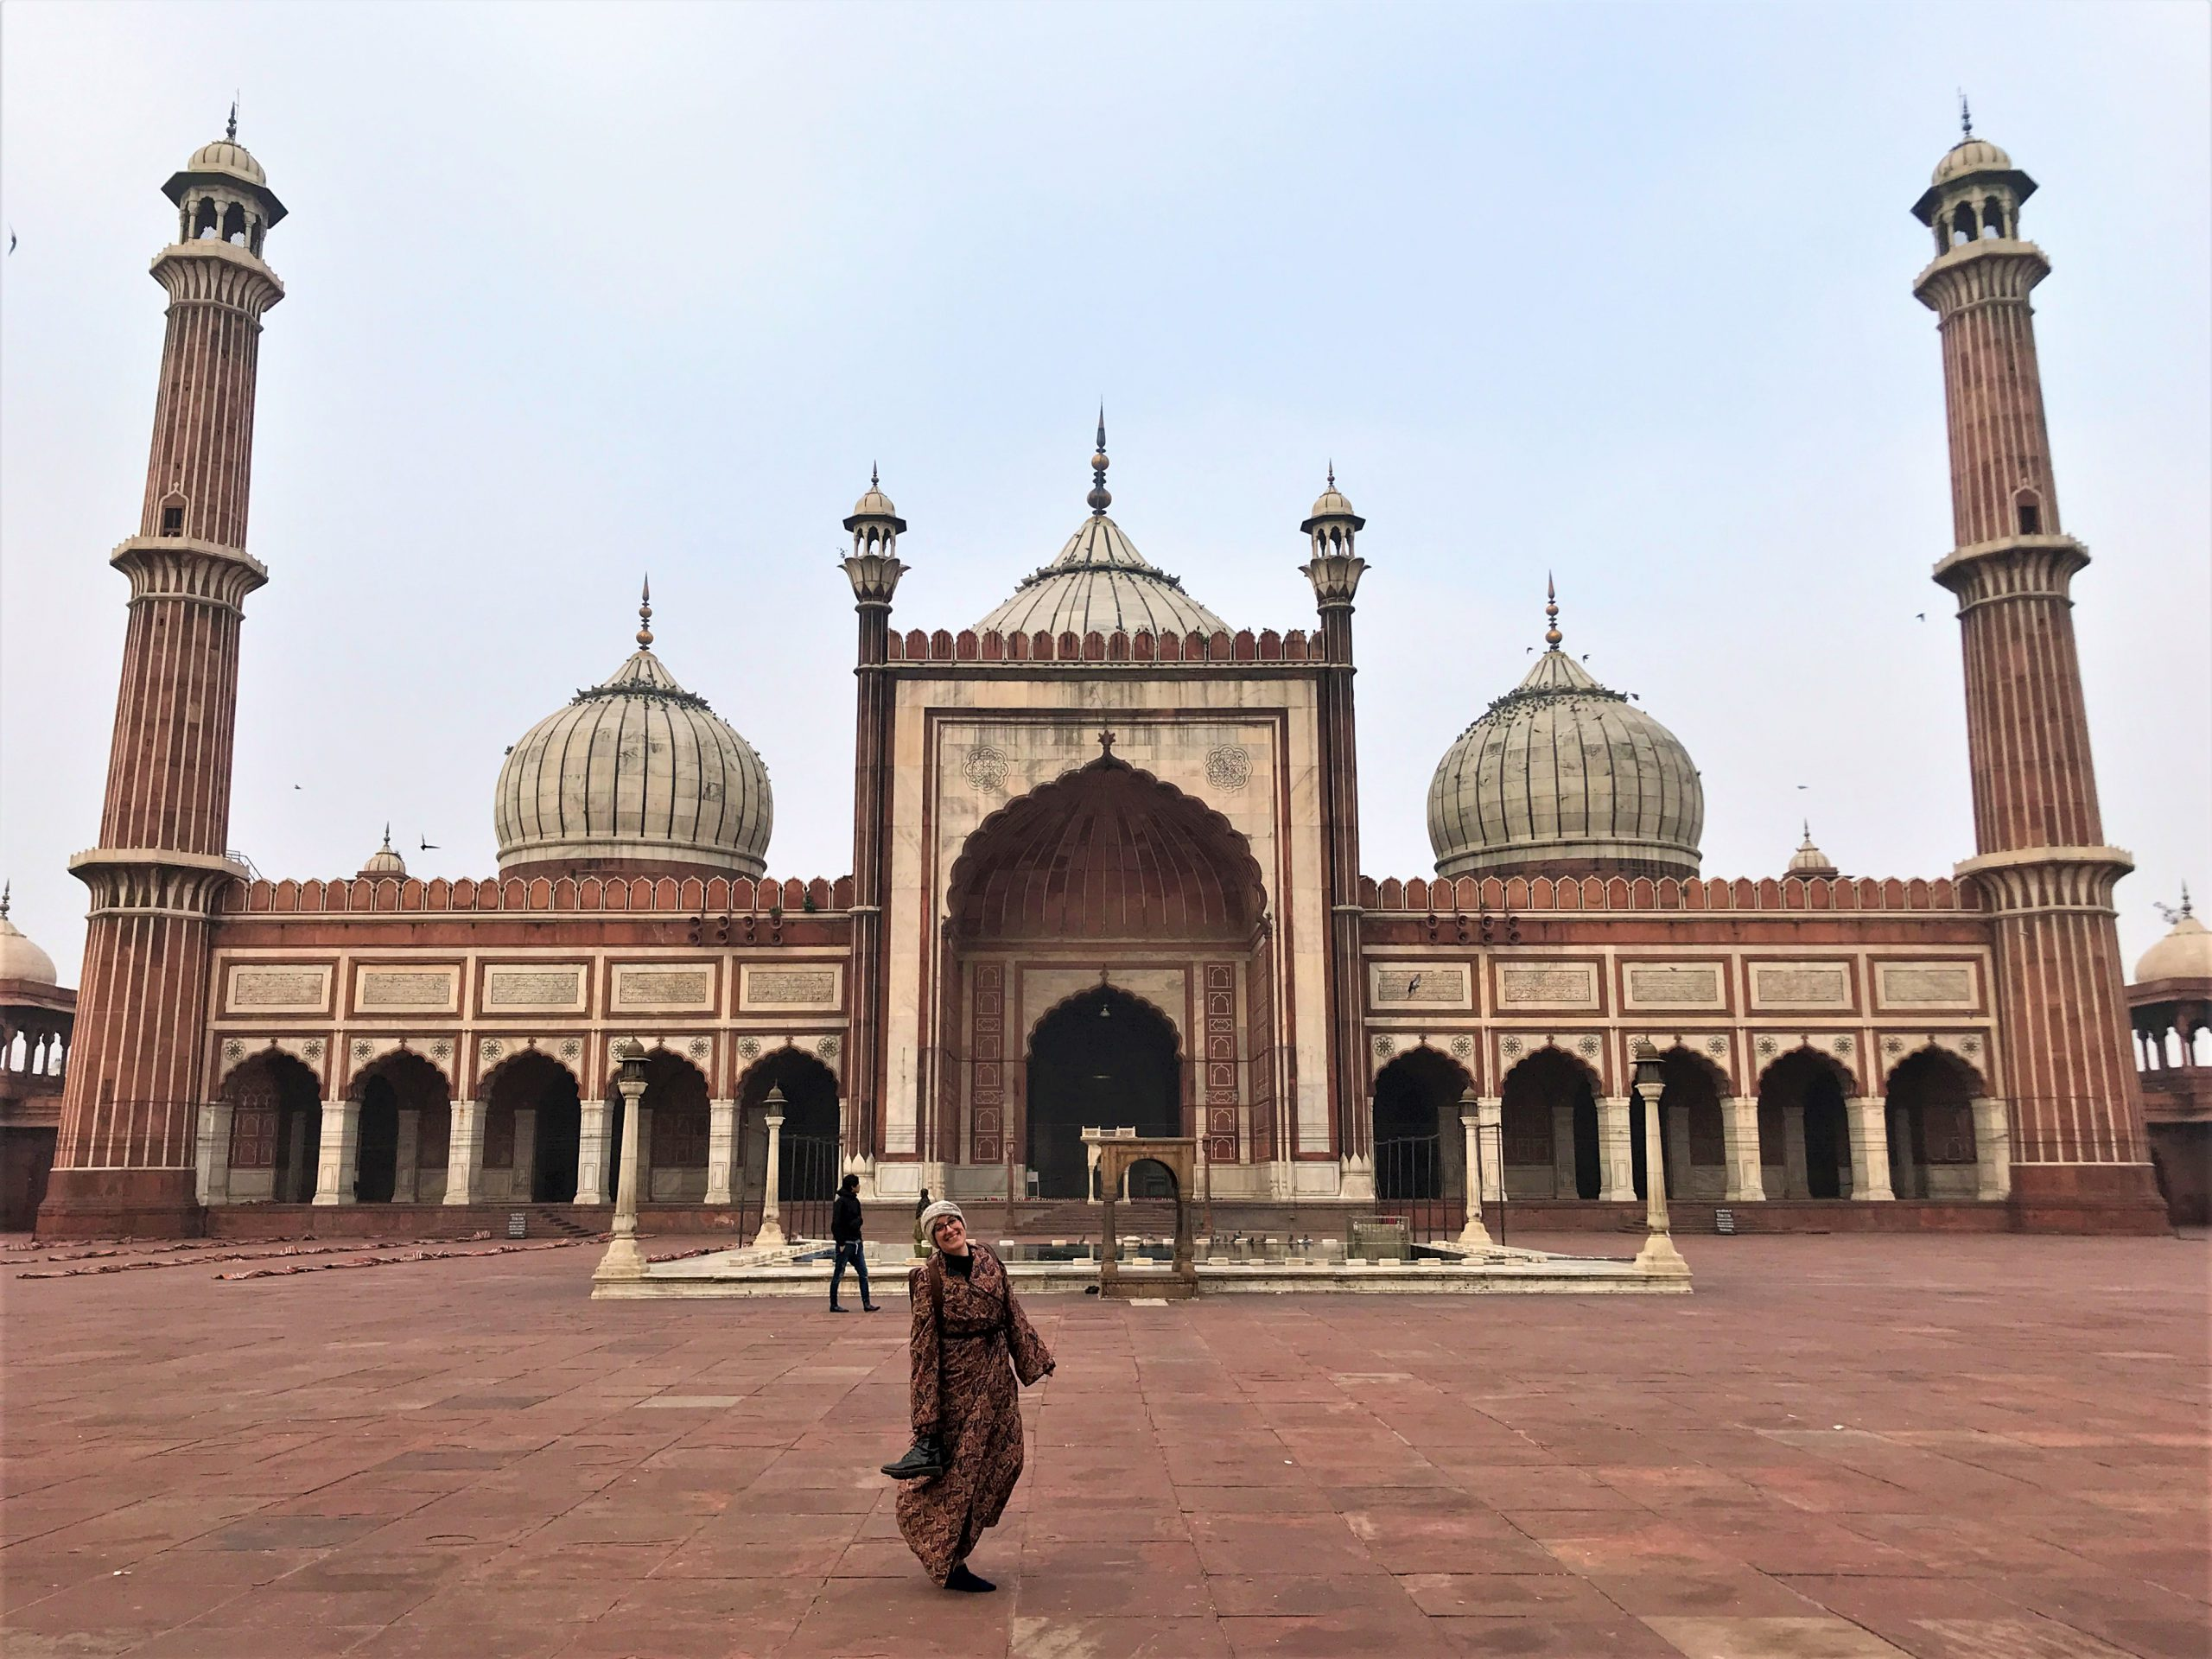 The Jama Masjid Mosque in Delhi India one of the five most important monuments from the Mughal empire